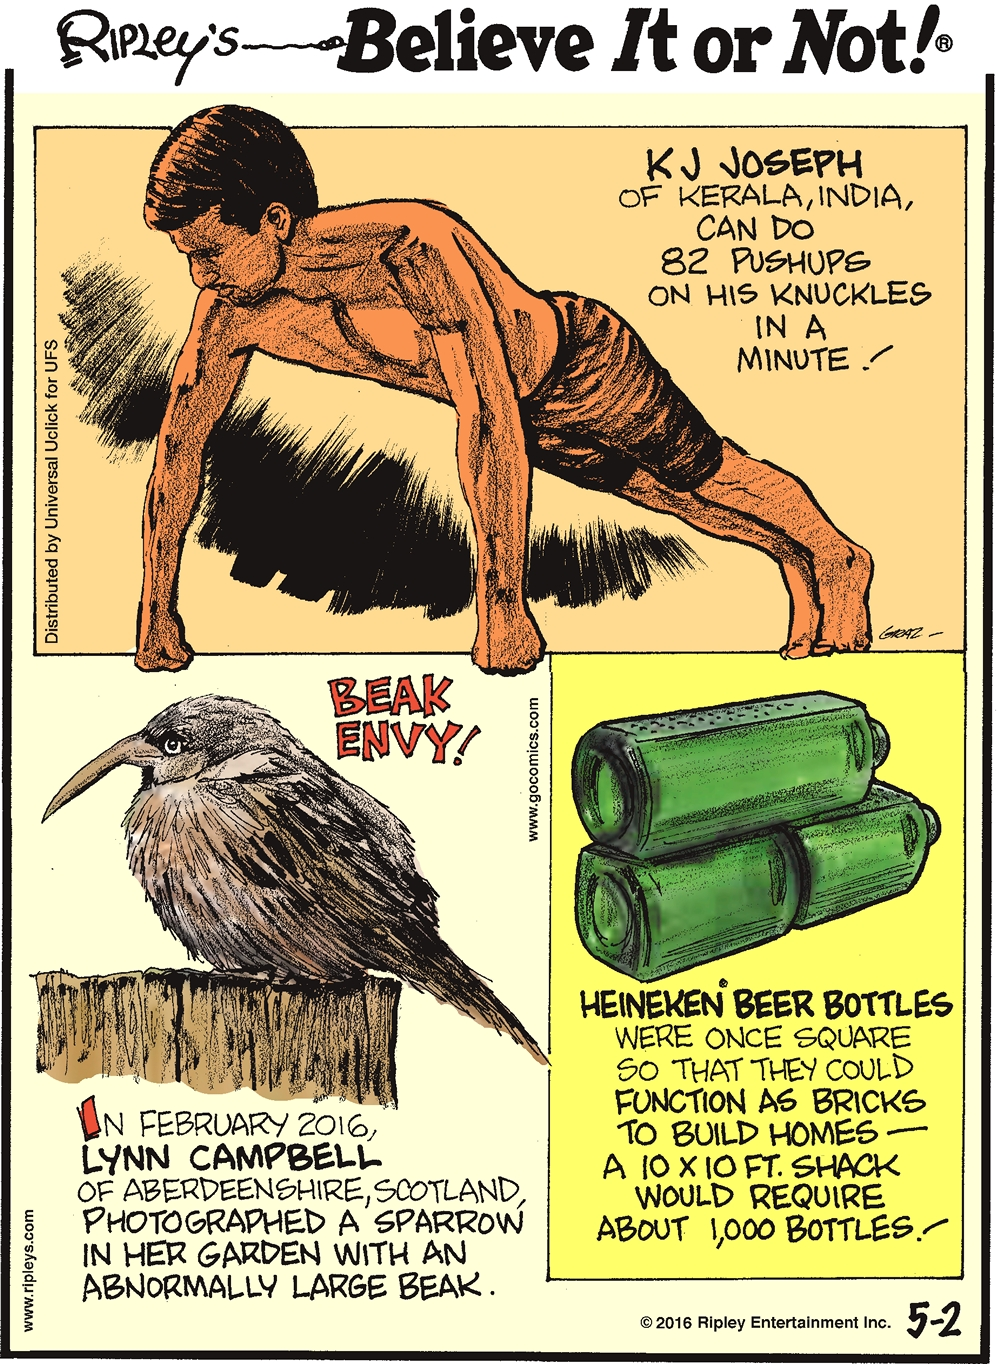 K J Joseph of Kerala, India, can do 82 pushups on his knuckles in a minute! -------------------- Beak envy! In February 2016, Lynn Campbell of Aberdeenshire, Scotland, photographed a sparrow in her garden with an abnormally large beak. -------------------- Heineken beer bottles were once square so that they could function as bricks to build homes—a 10 x 10 ft. square shack would require about 1,000 bottles!